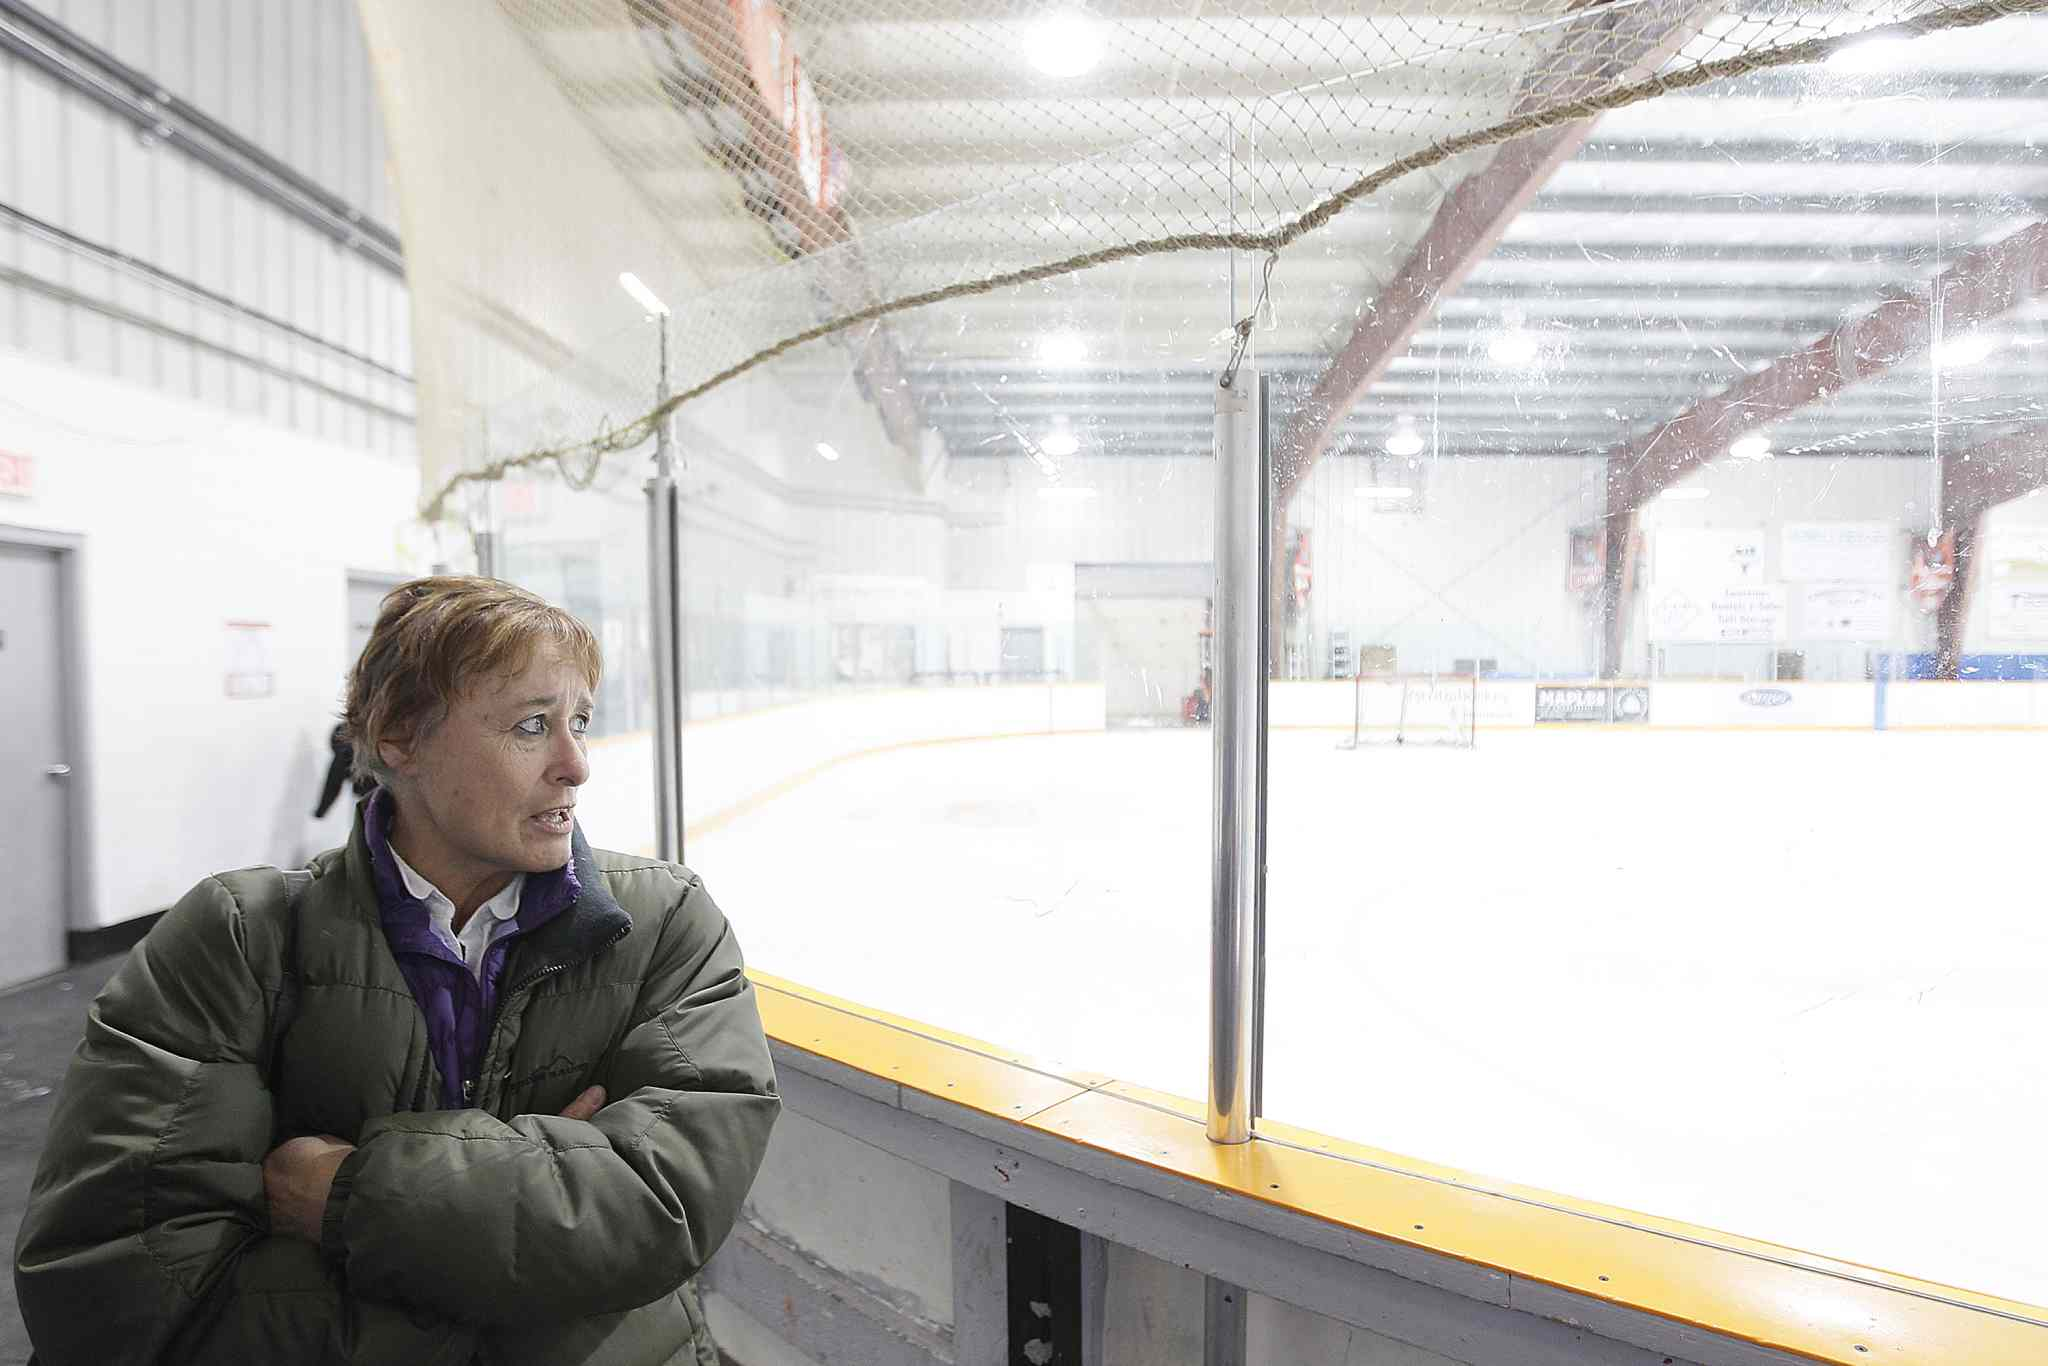 Sharon Gibson says the Respect in Sport course will educate hockey parents on what's expected of them at games.